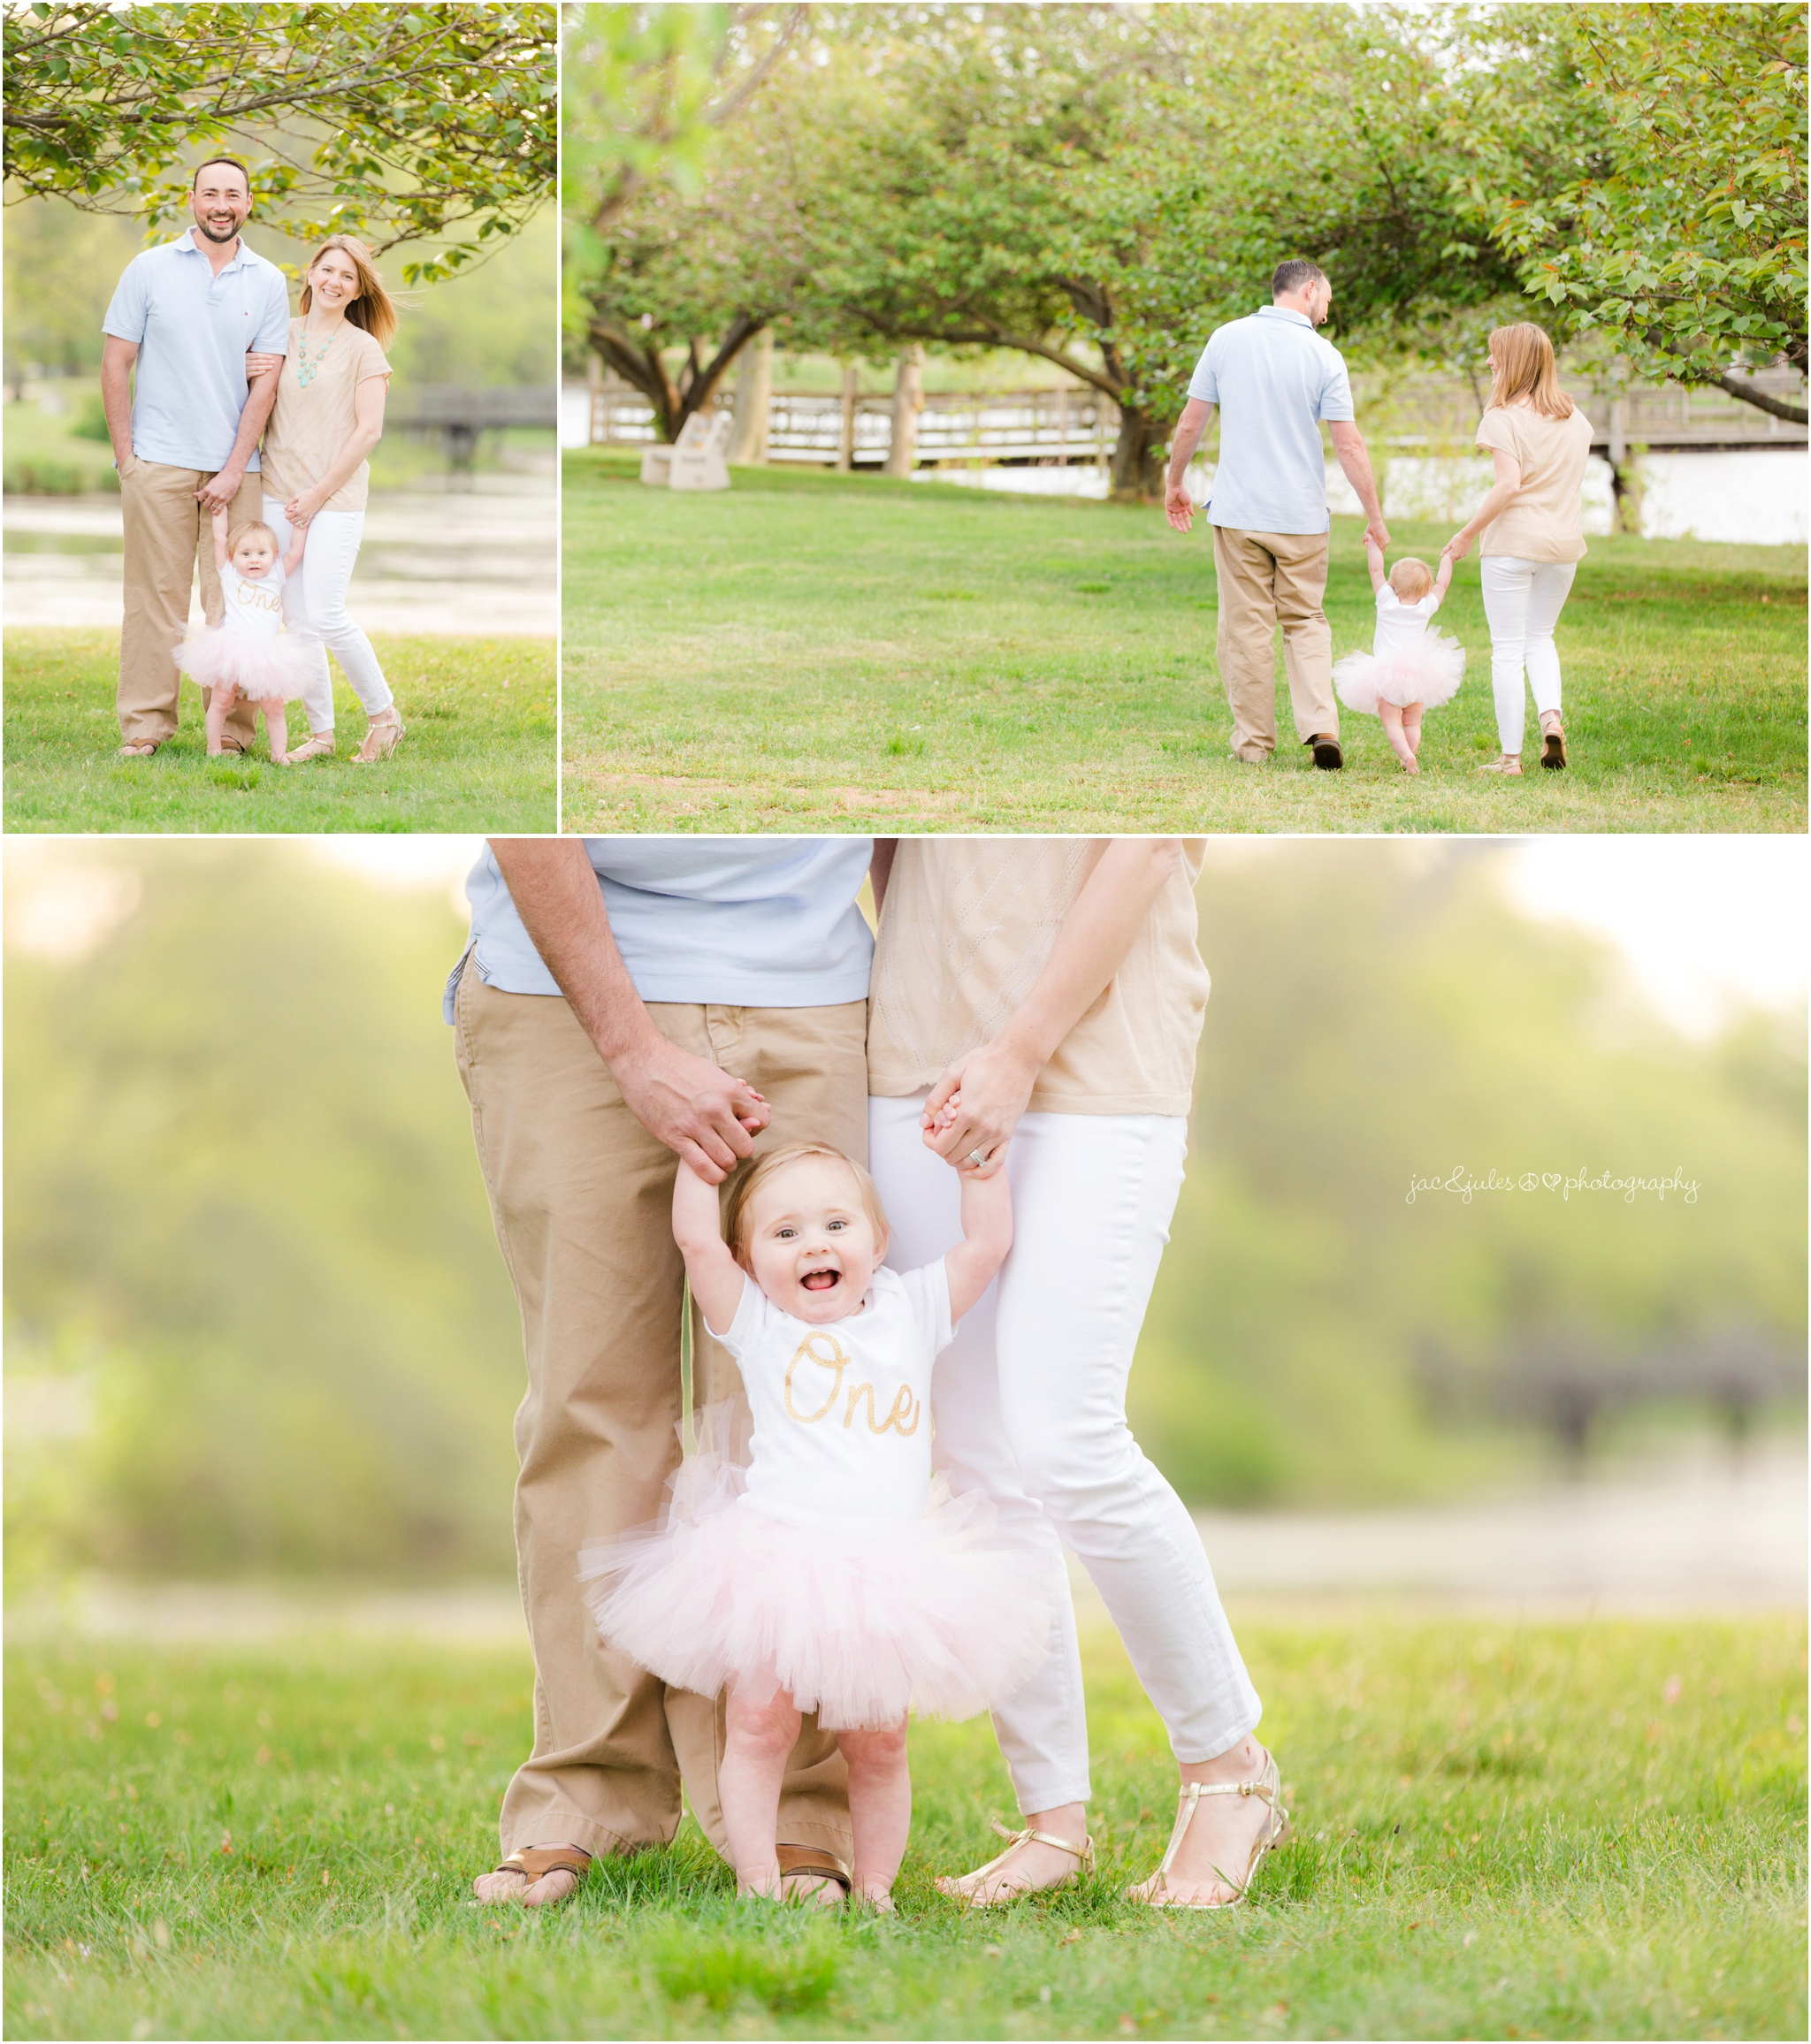 Family photos at Divine Park in Spring Lake, NJ